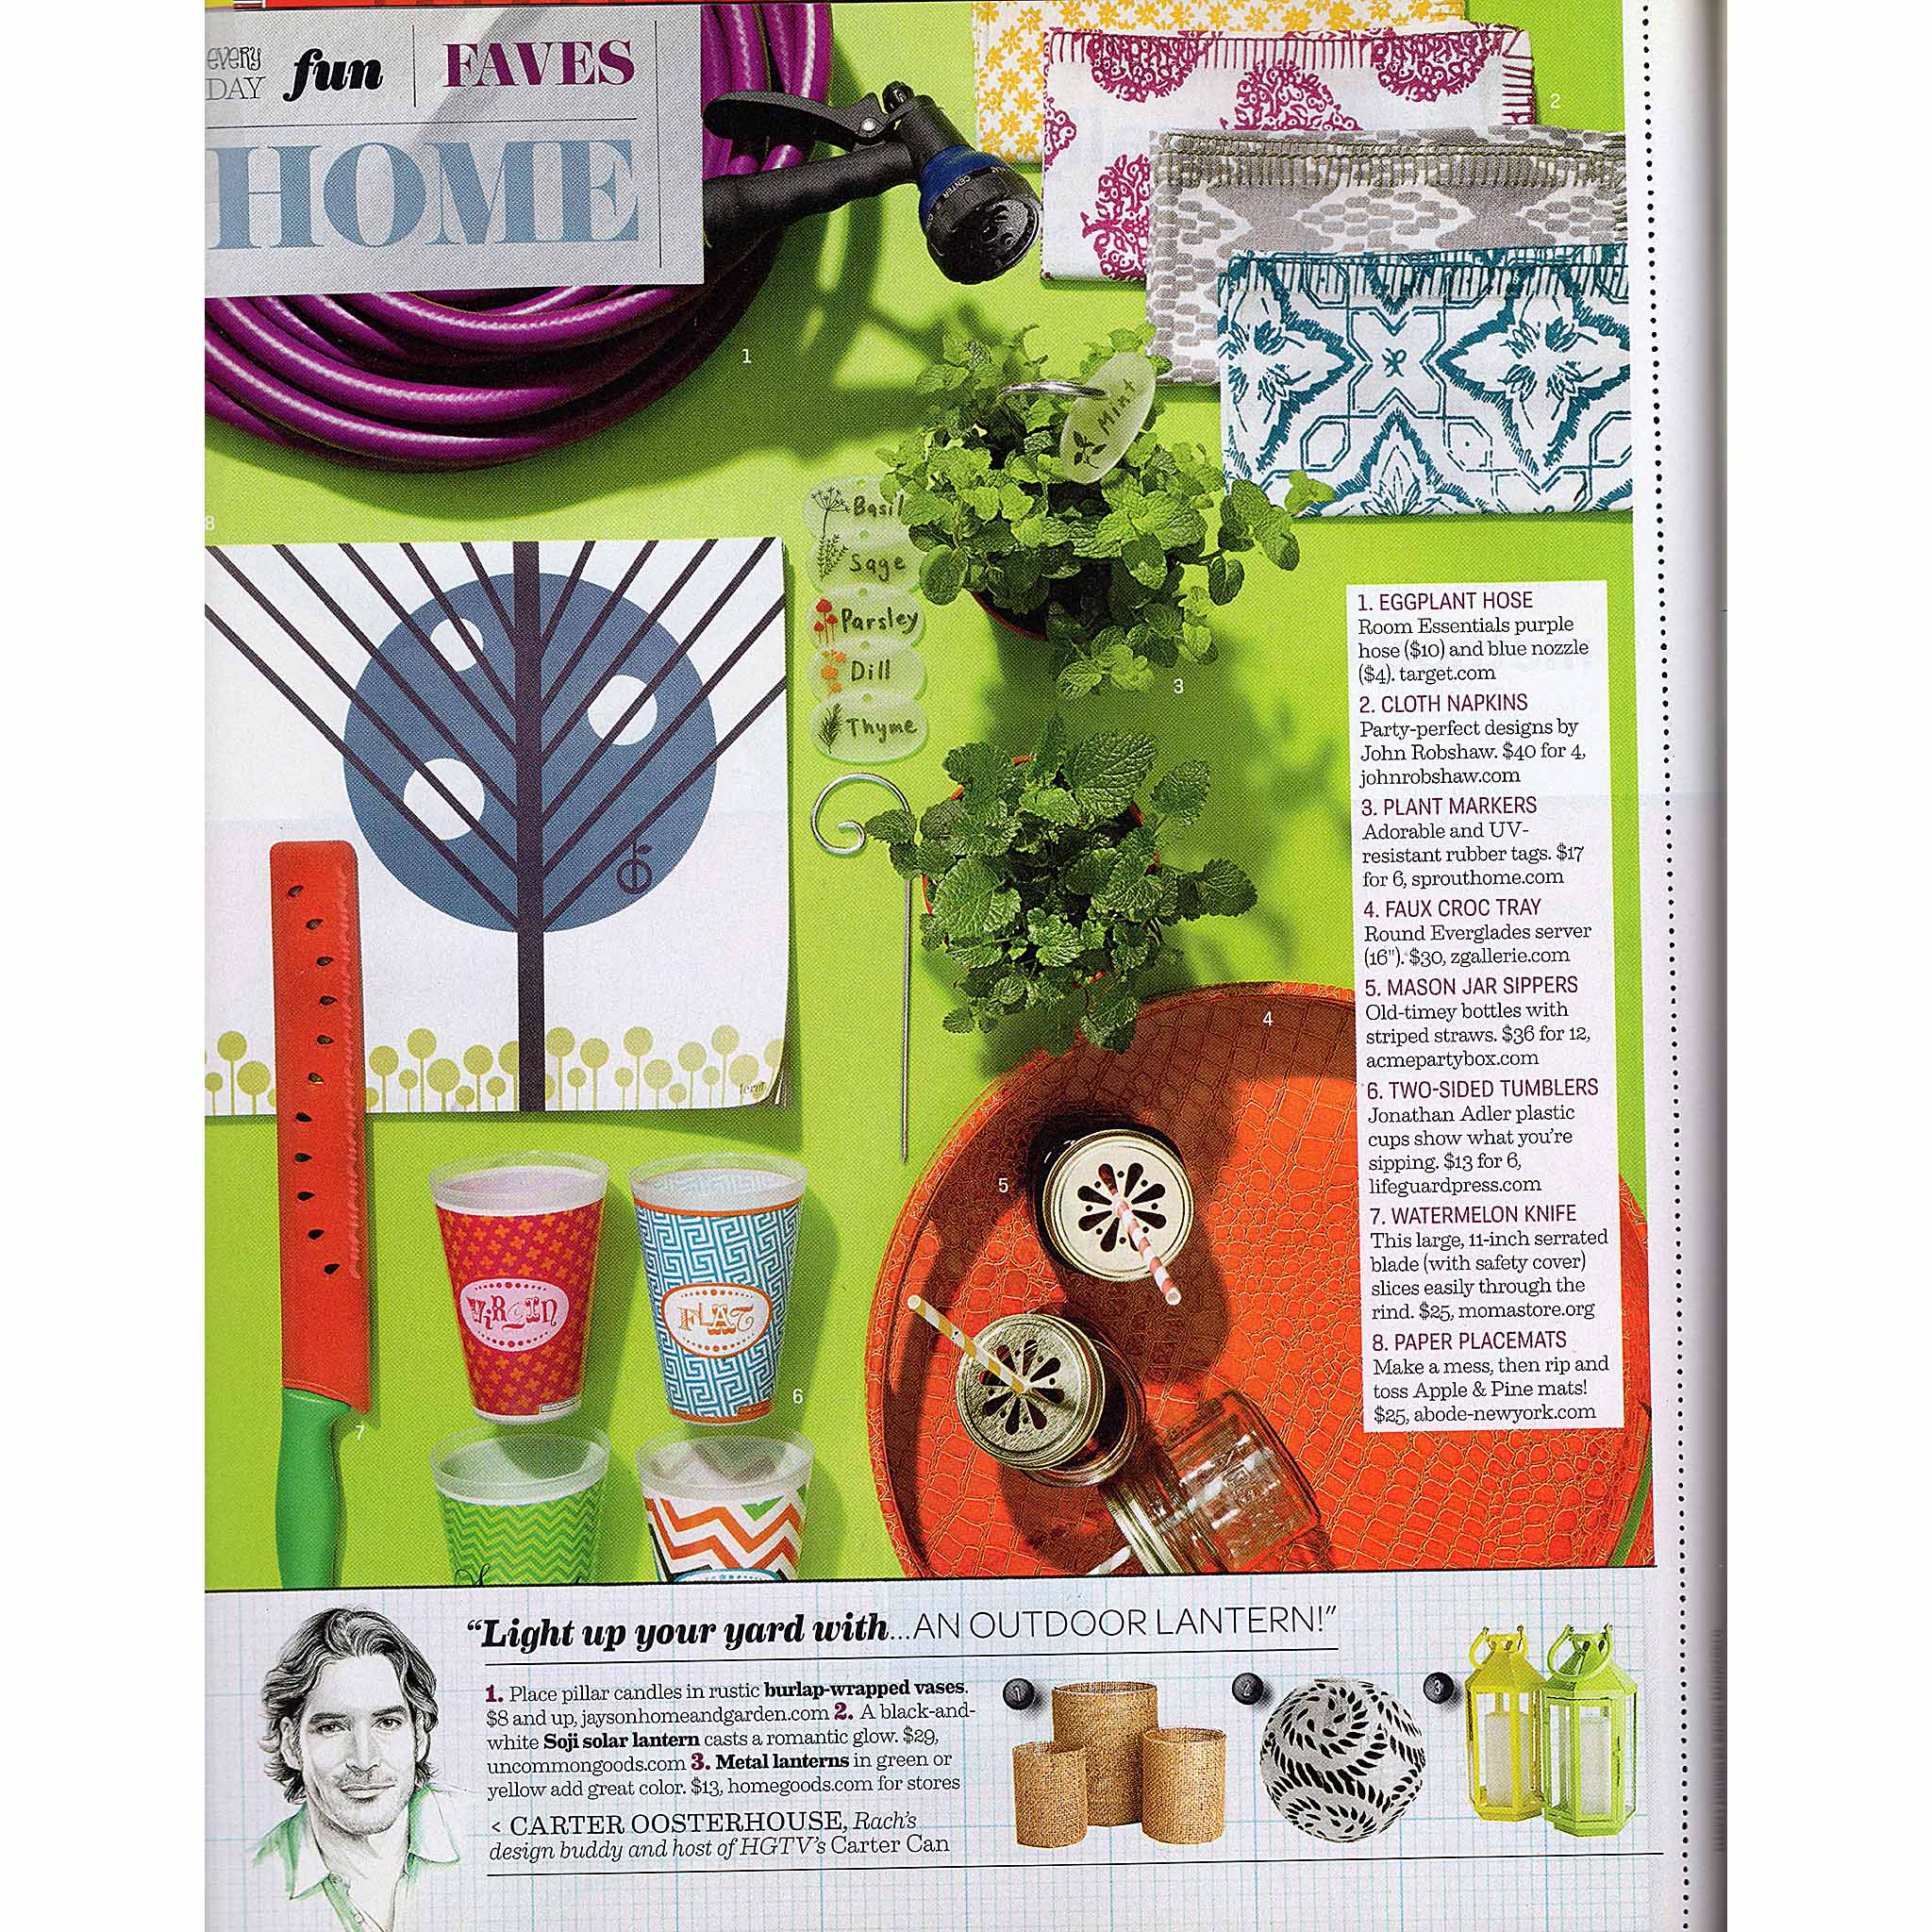 """Every Day with Rachael Ray, """"Every Day Fun - Faves / Home,"""" Ferm Living Apple and Pine paper place mats, June/July 2011."""